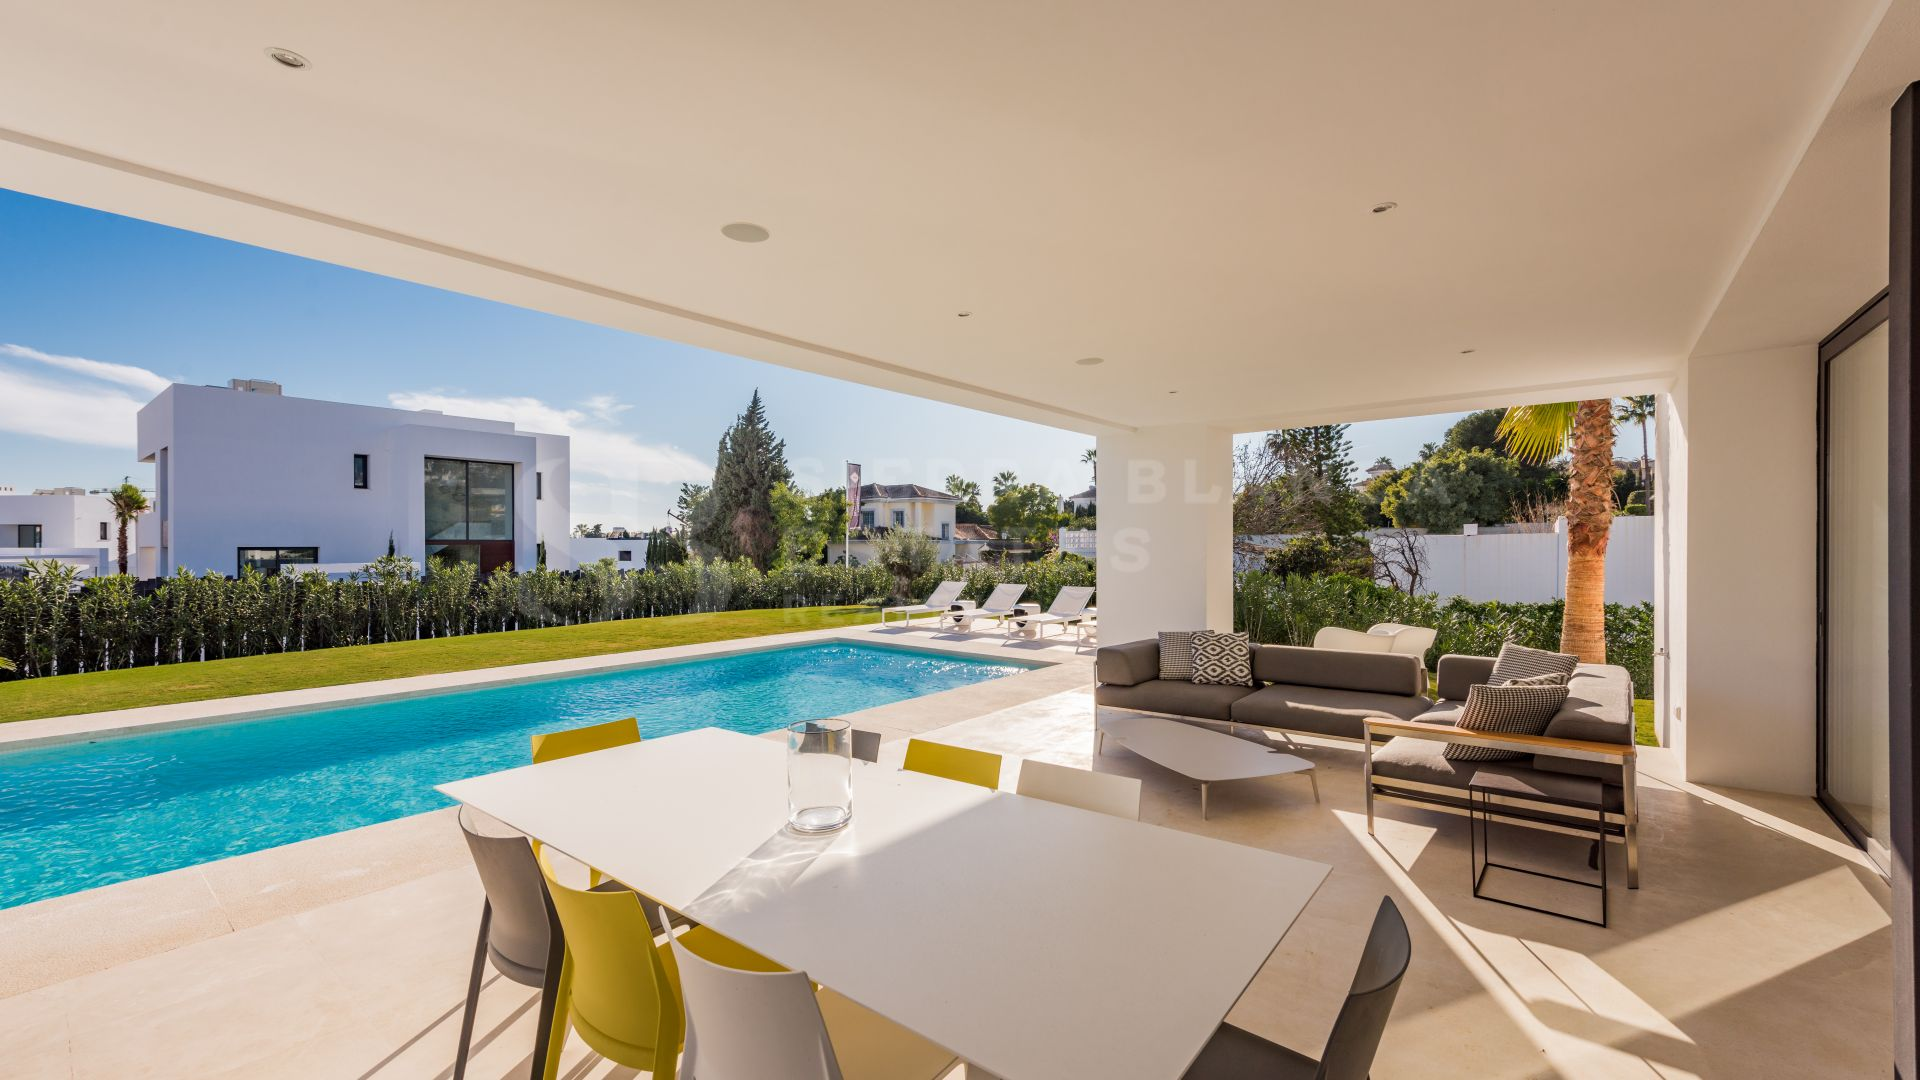 Stylish Contemporary Villa For Rent in Cortijo del Mar